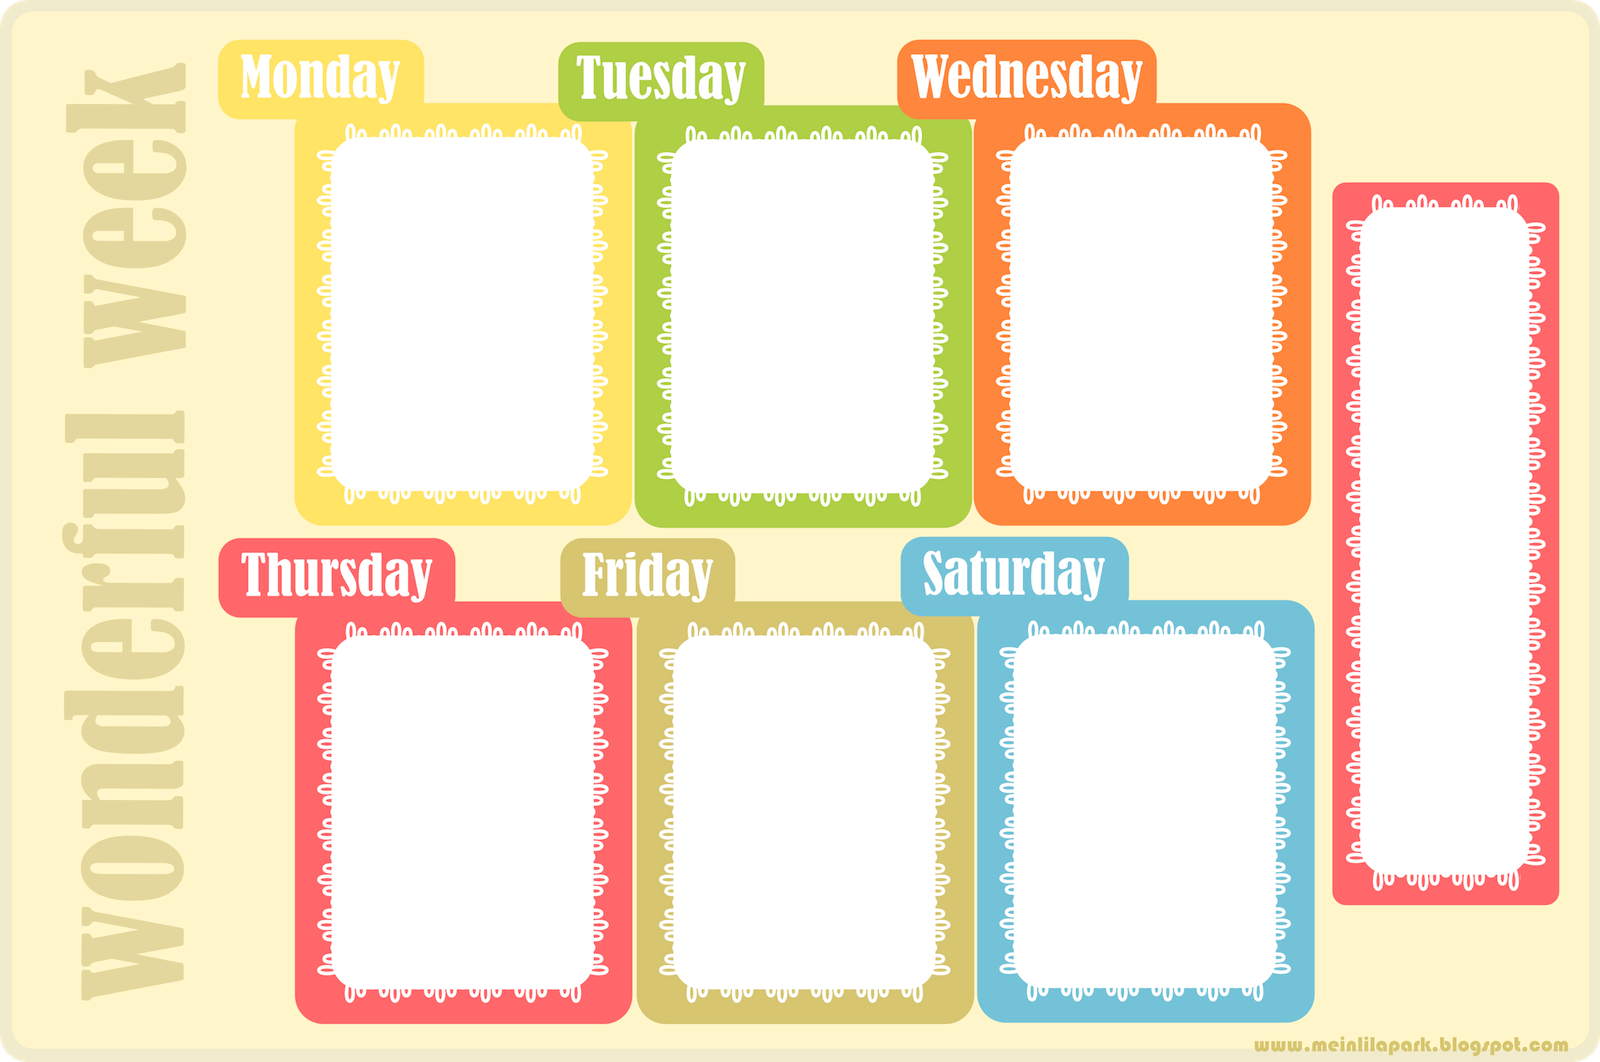 Accepting A Job Offer Via Emailfree weekly menu templates 1000 – Menu for the Week Template